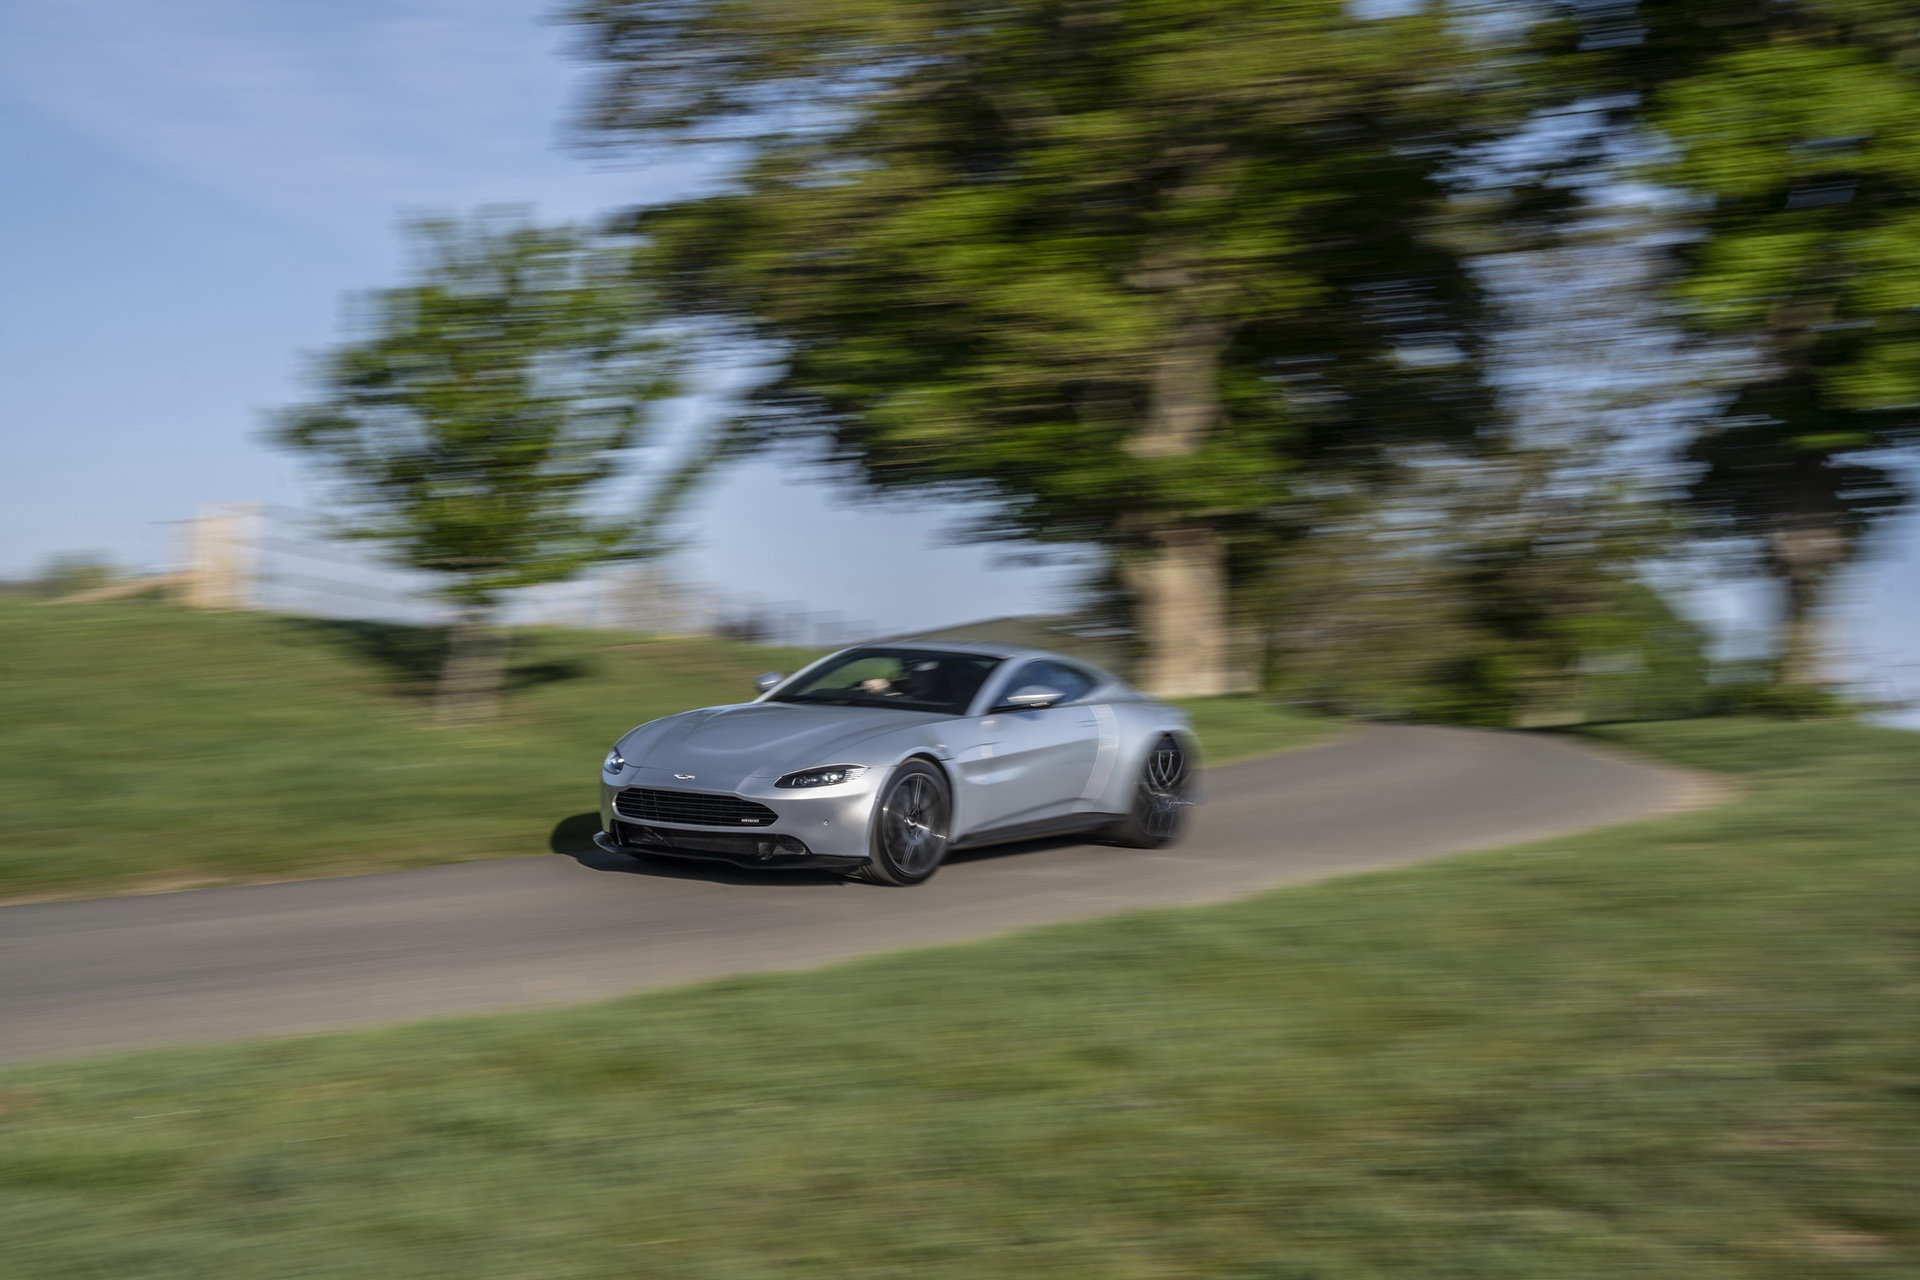 10.-Revenant-Automotive-Aston-Martin-Vantage-bumper-driving